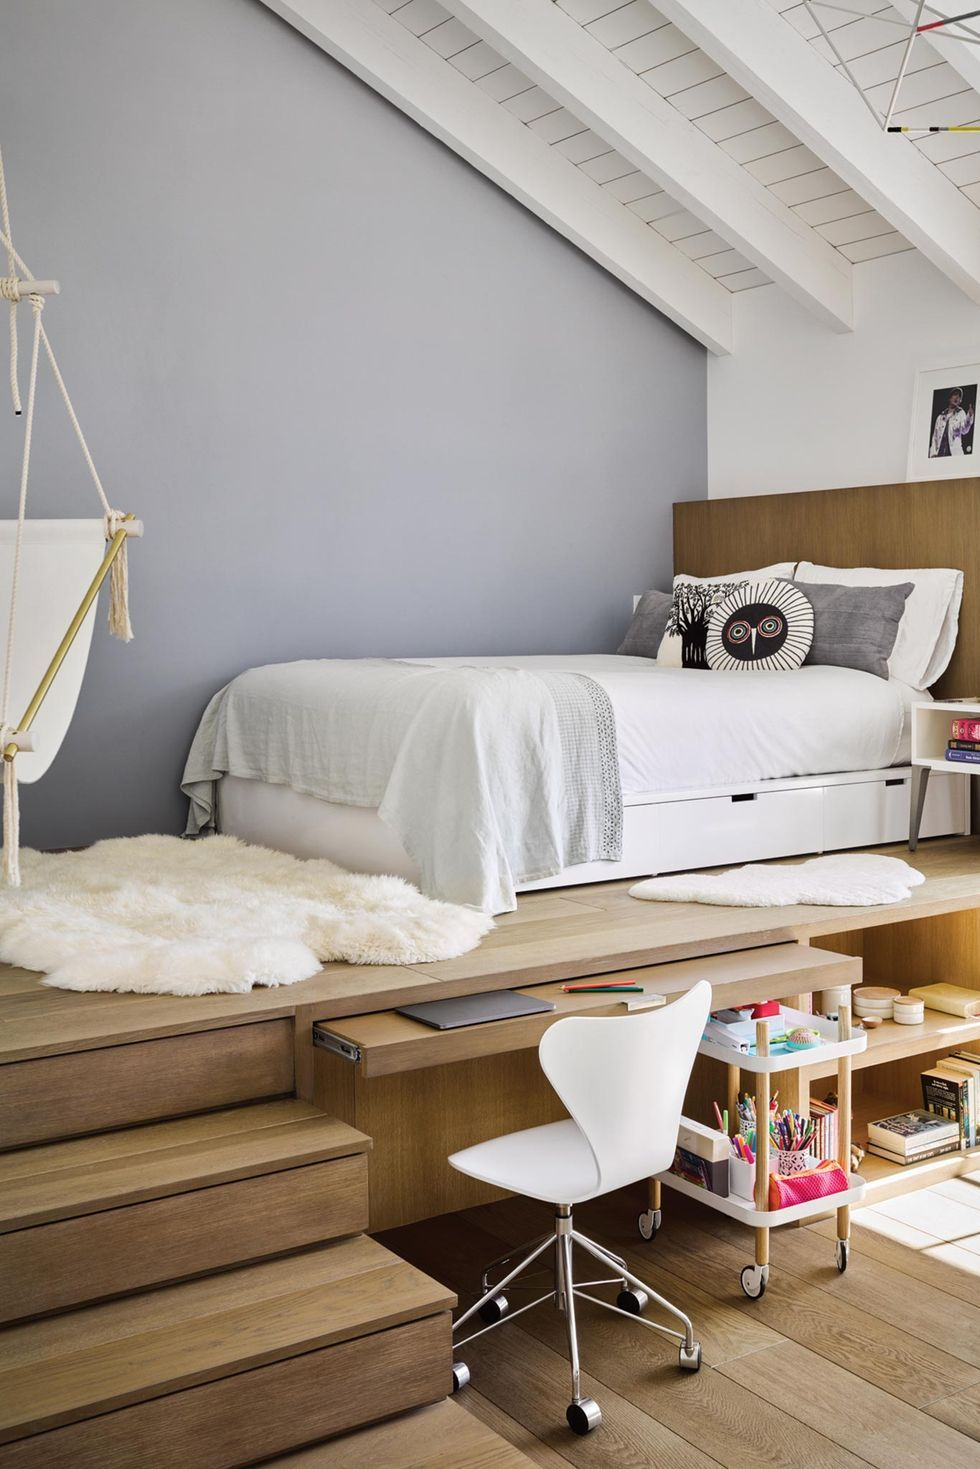 Easy And Clever Kid S Room Storage Ideas In 2020 Loft Room